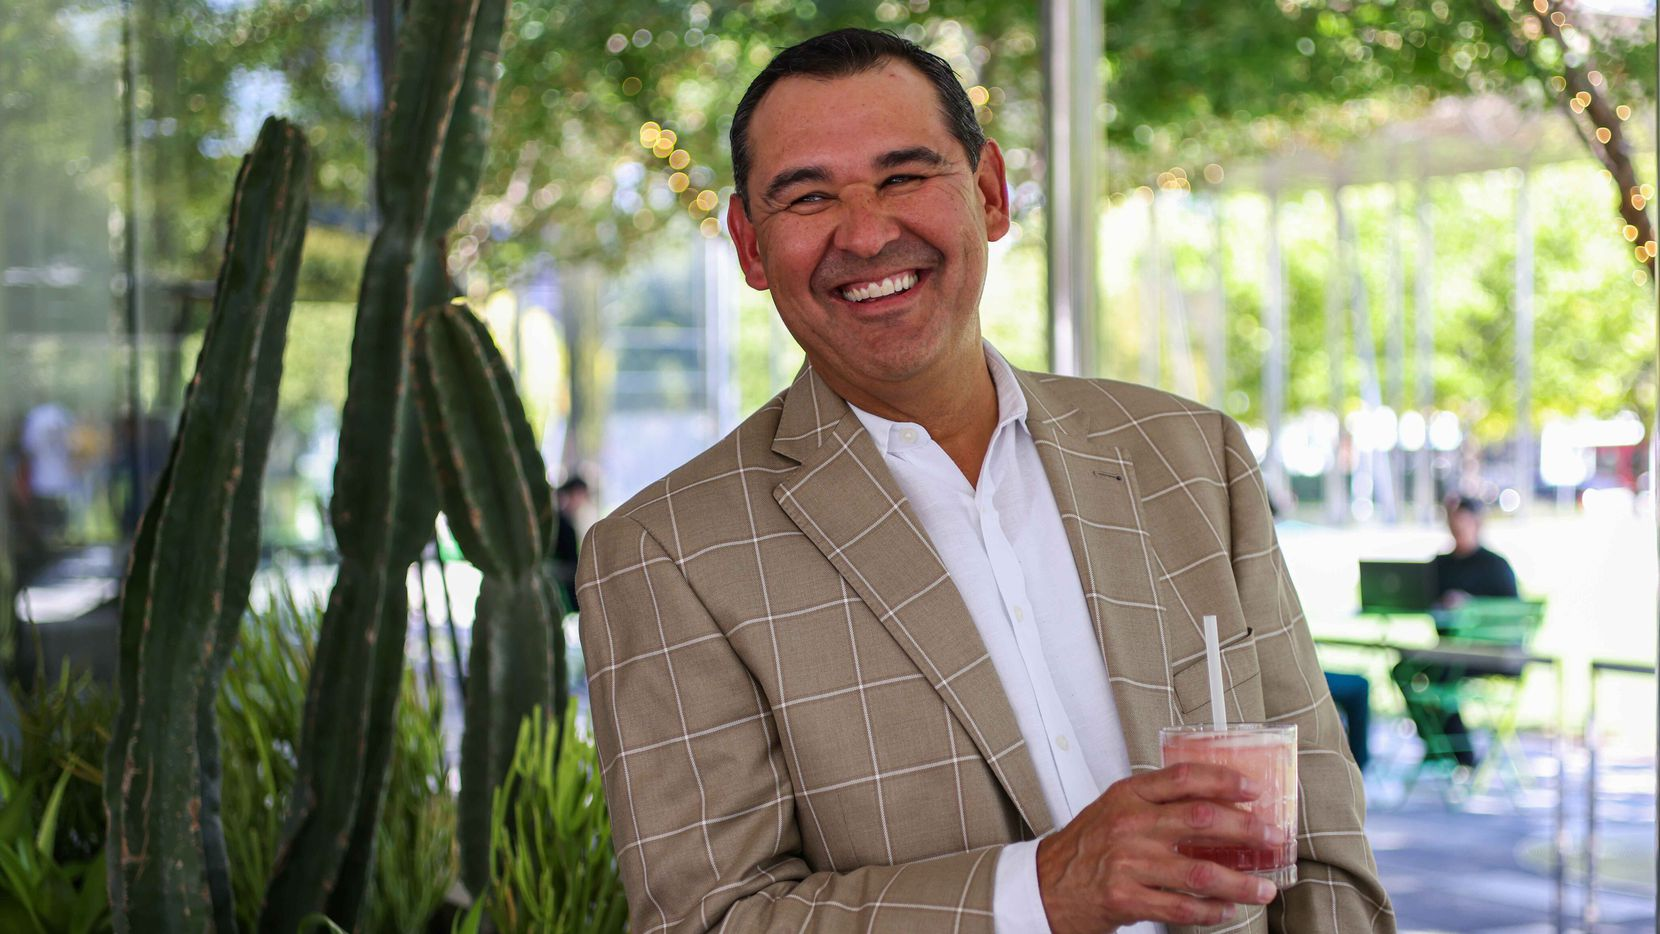 Mi Cocina CEO Edgar Guevara is leading the restaurant group into its 30th year. The newest one, in Dallas' Klyde Warren Park, will be an iconic spot for the longtime Dallas company.